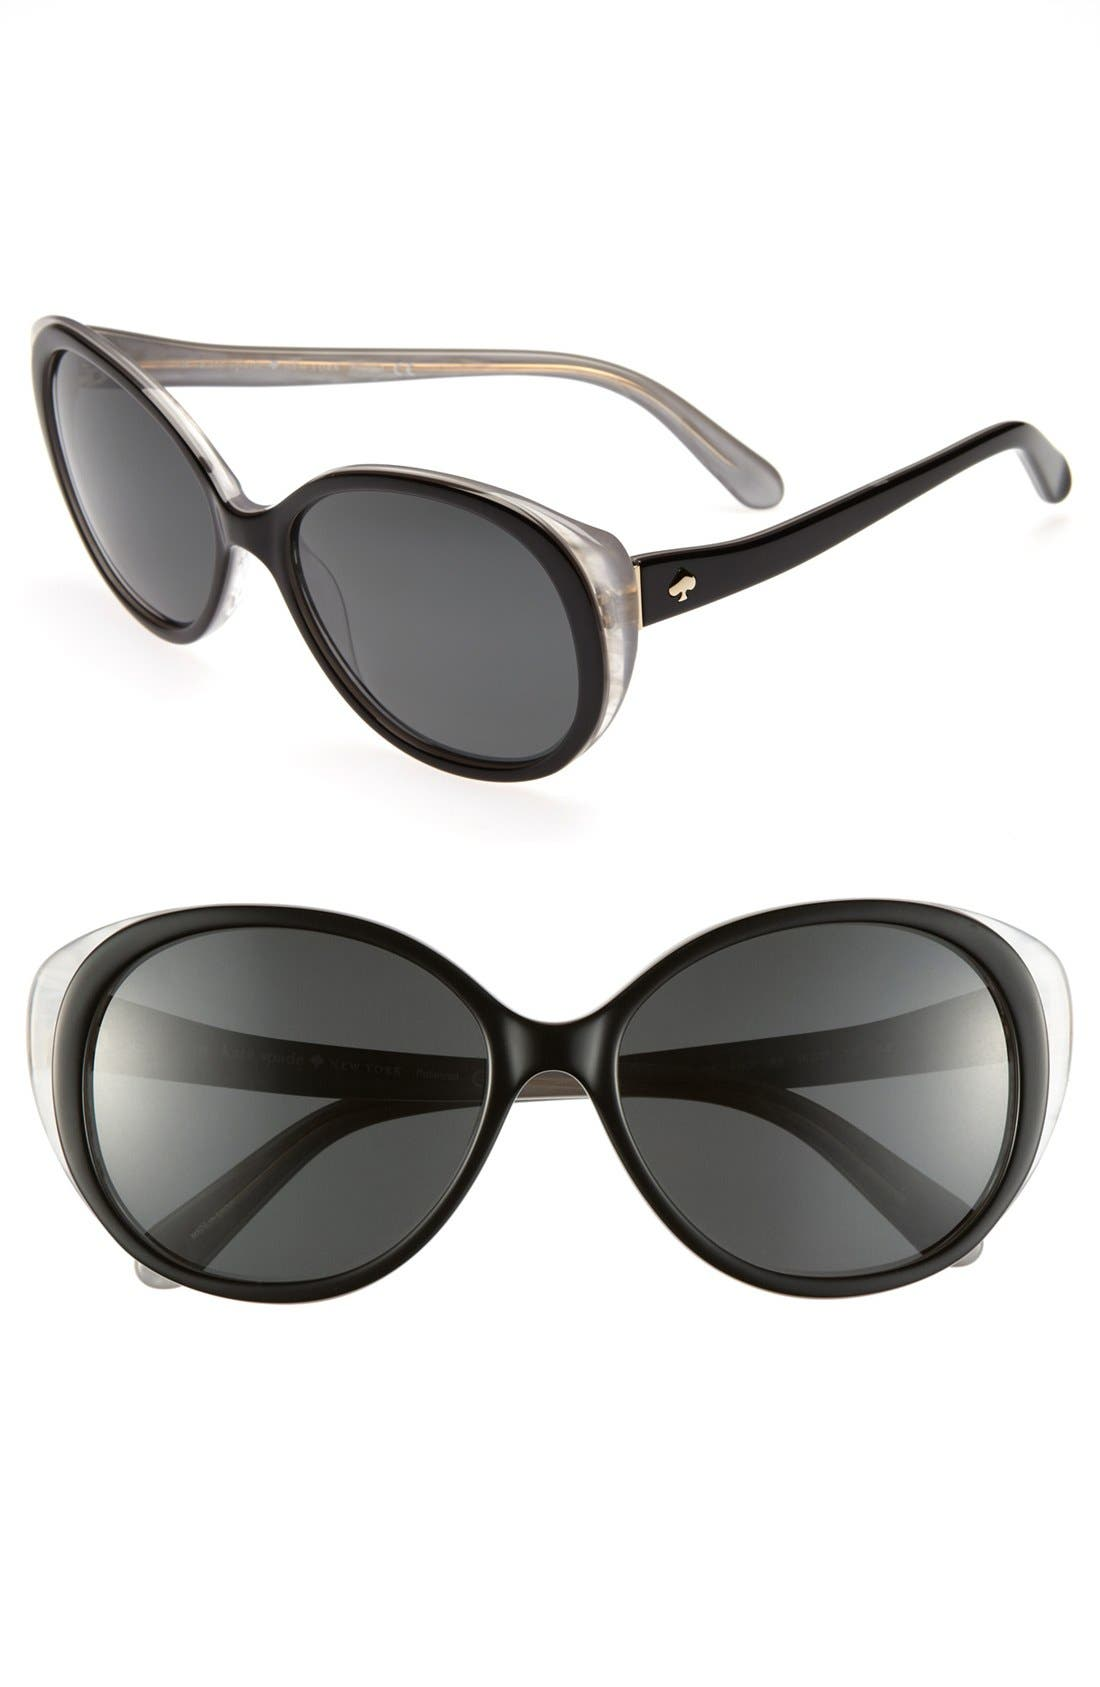 Main Image - kate spade new york 'finola' 56mm polarized sunglasses